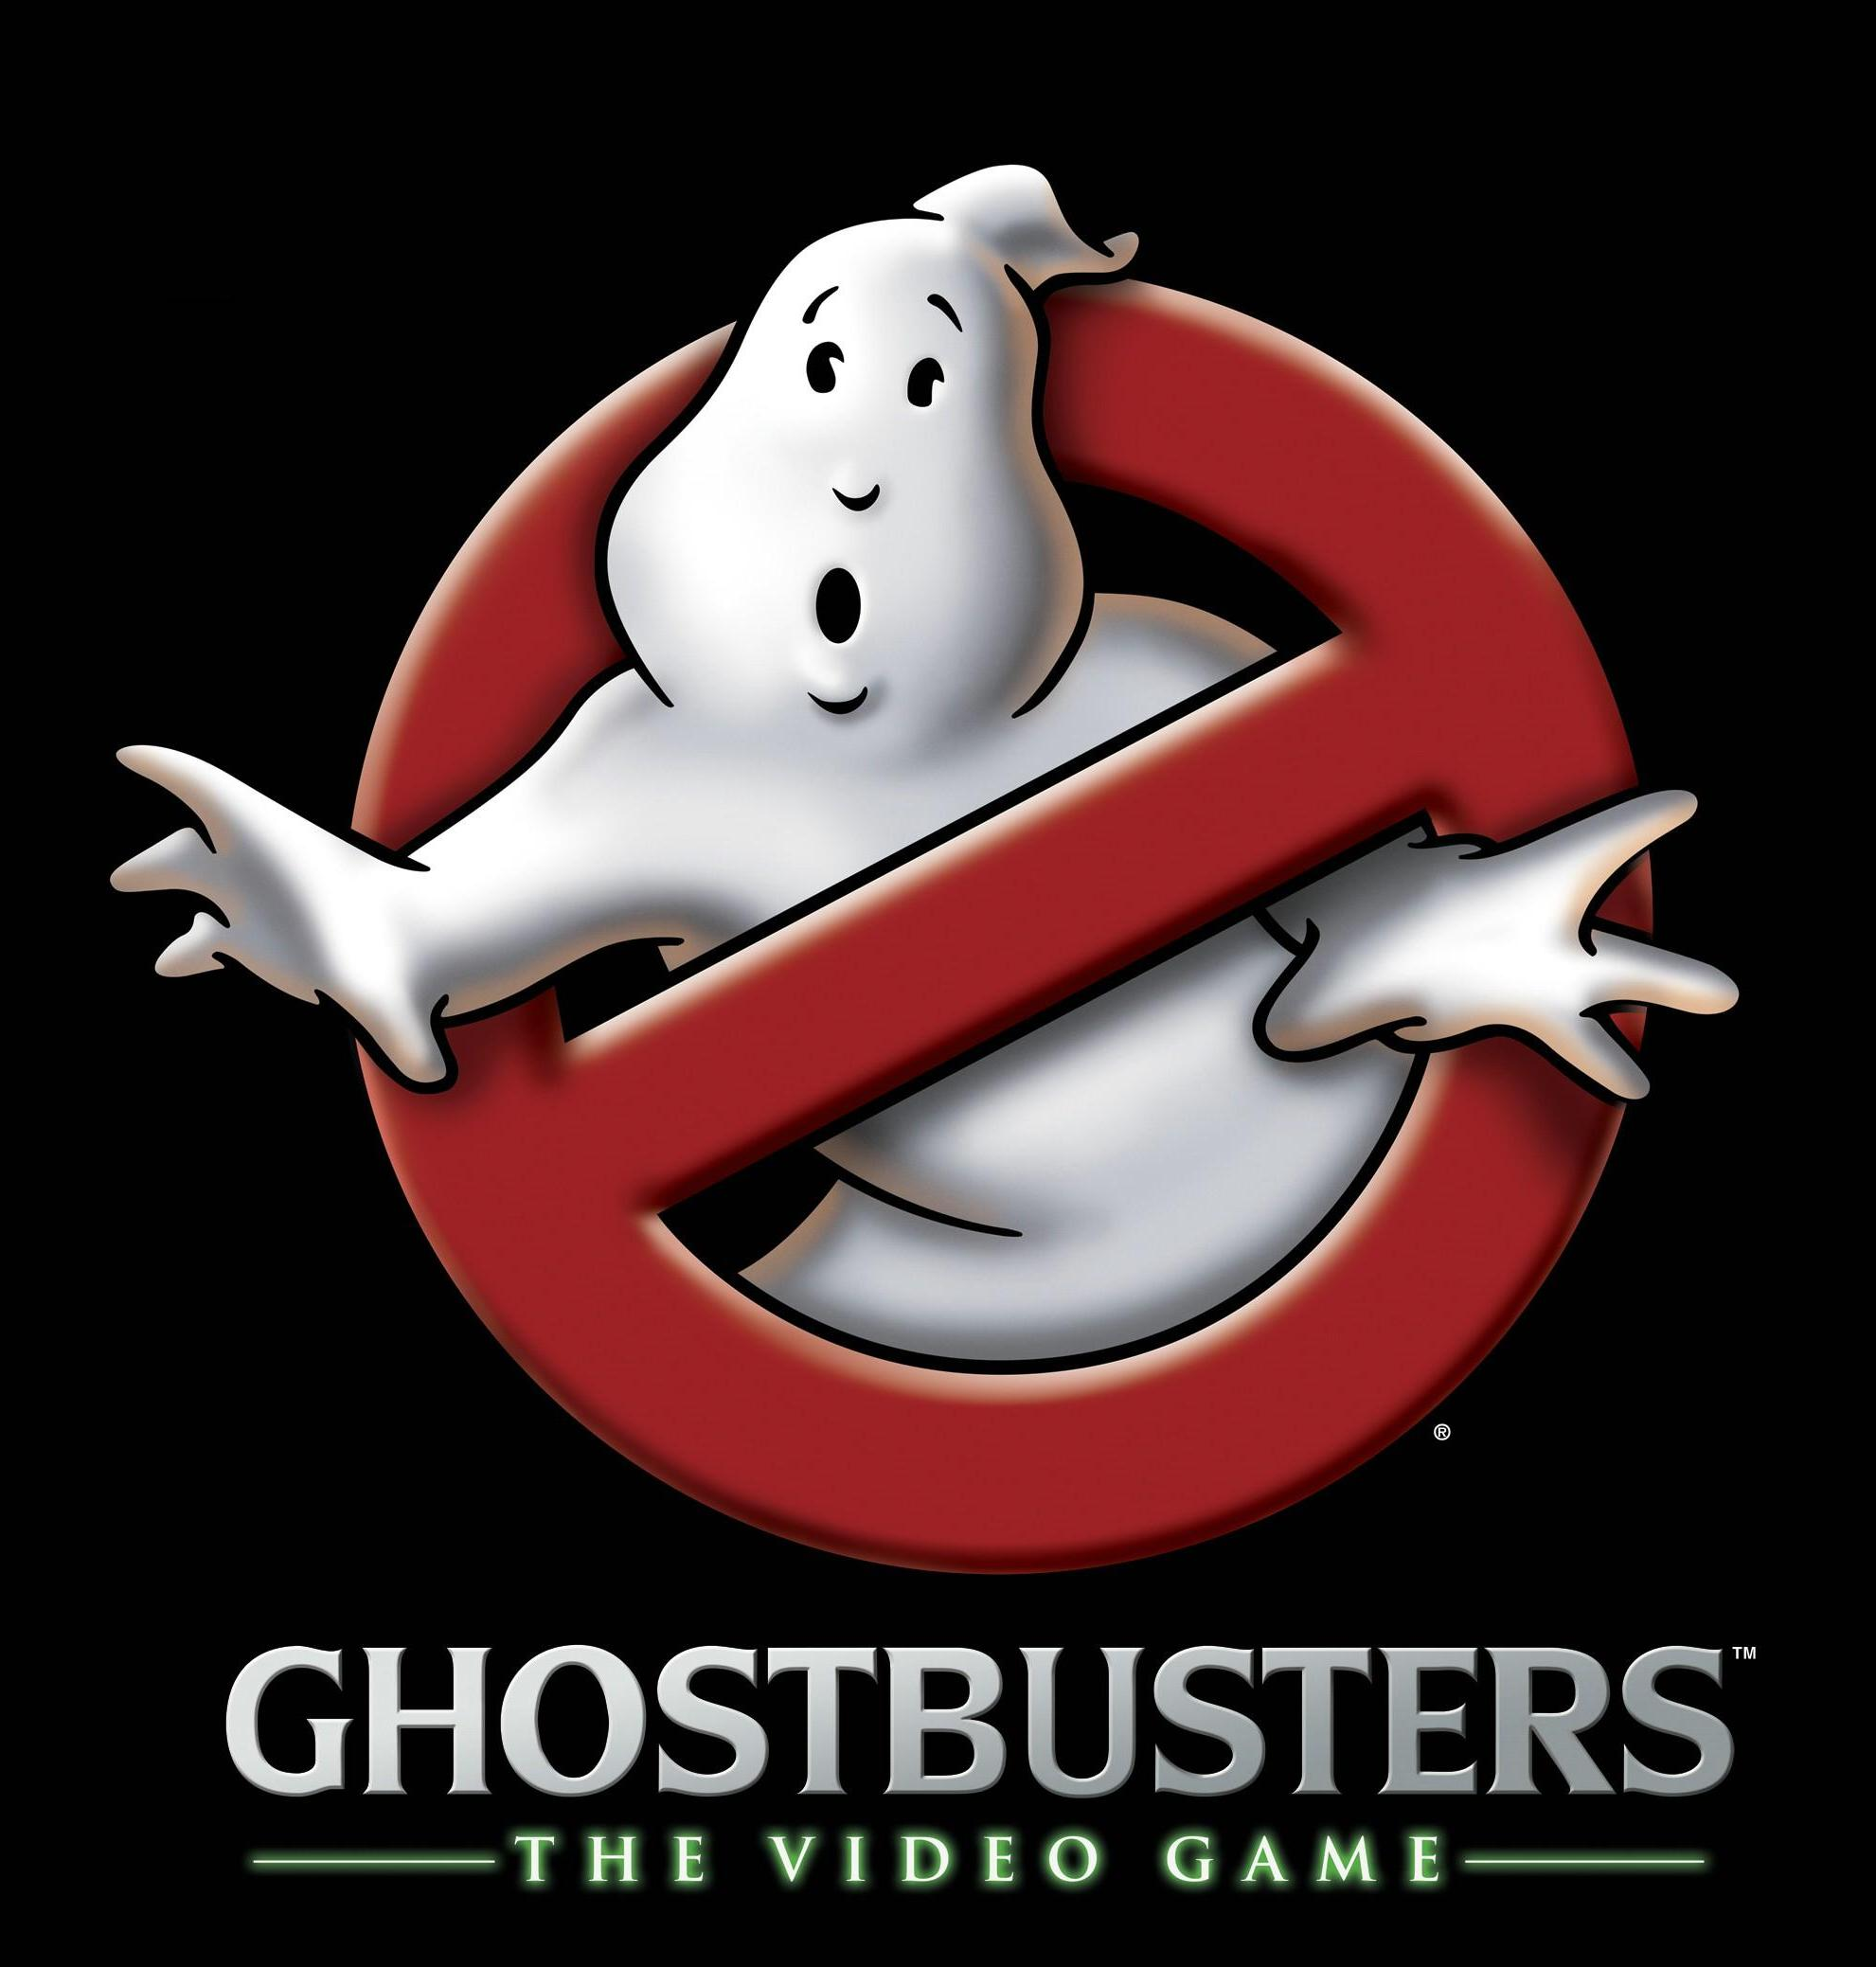 Ghostbusters: The Video Game logo